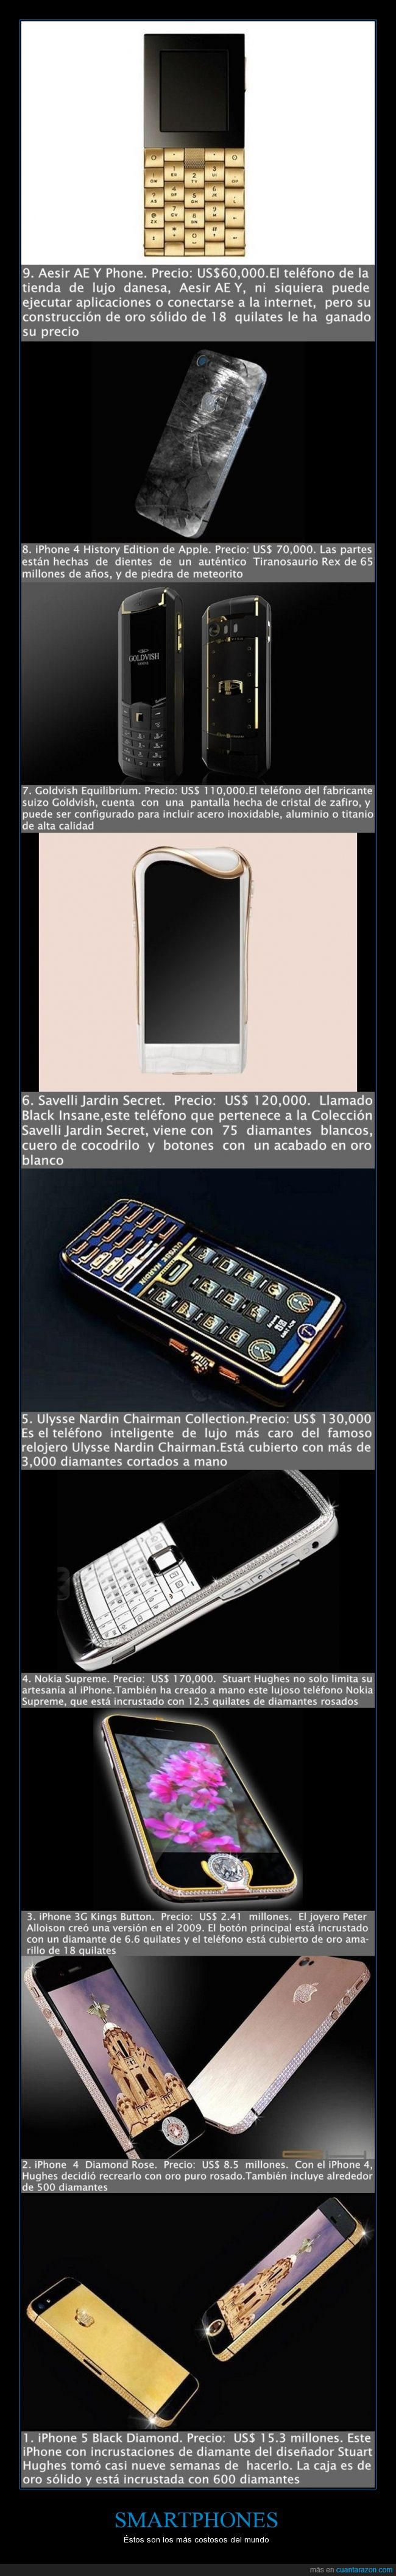 diamantes,iPhone,iPhone 4 Diamond Rose,iPhone 5 Black Diamond,Nokia Supreme,Peter Alloison,Savelli Jardin Secret,smartphone,Stuart Hughes,tecnología,Ulysse Nardin Chairman